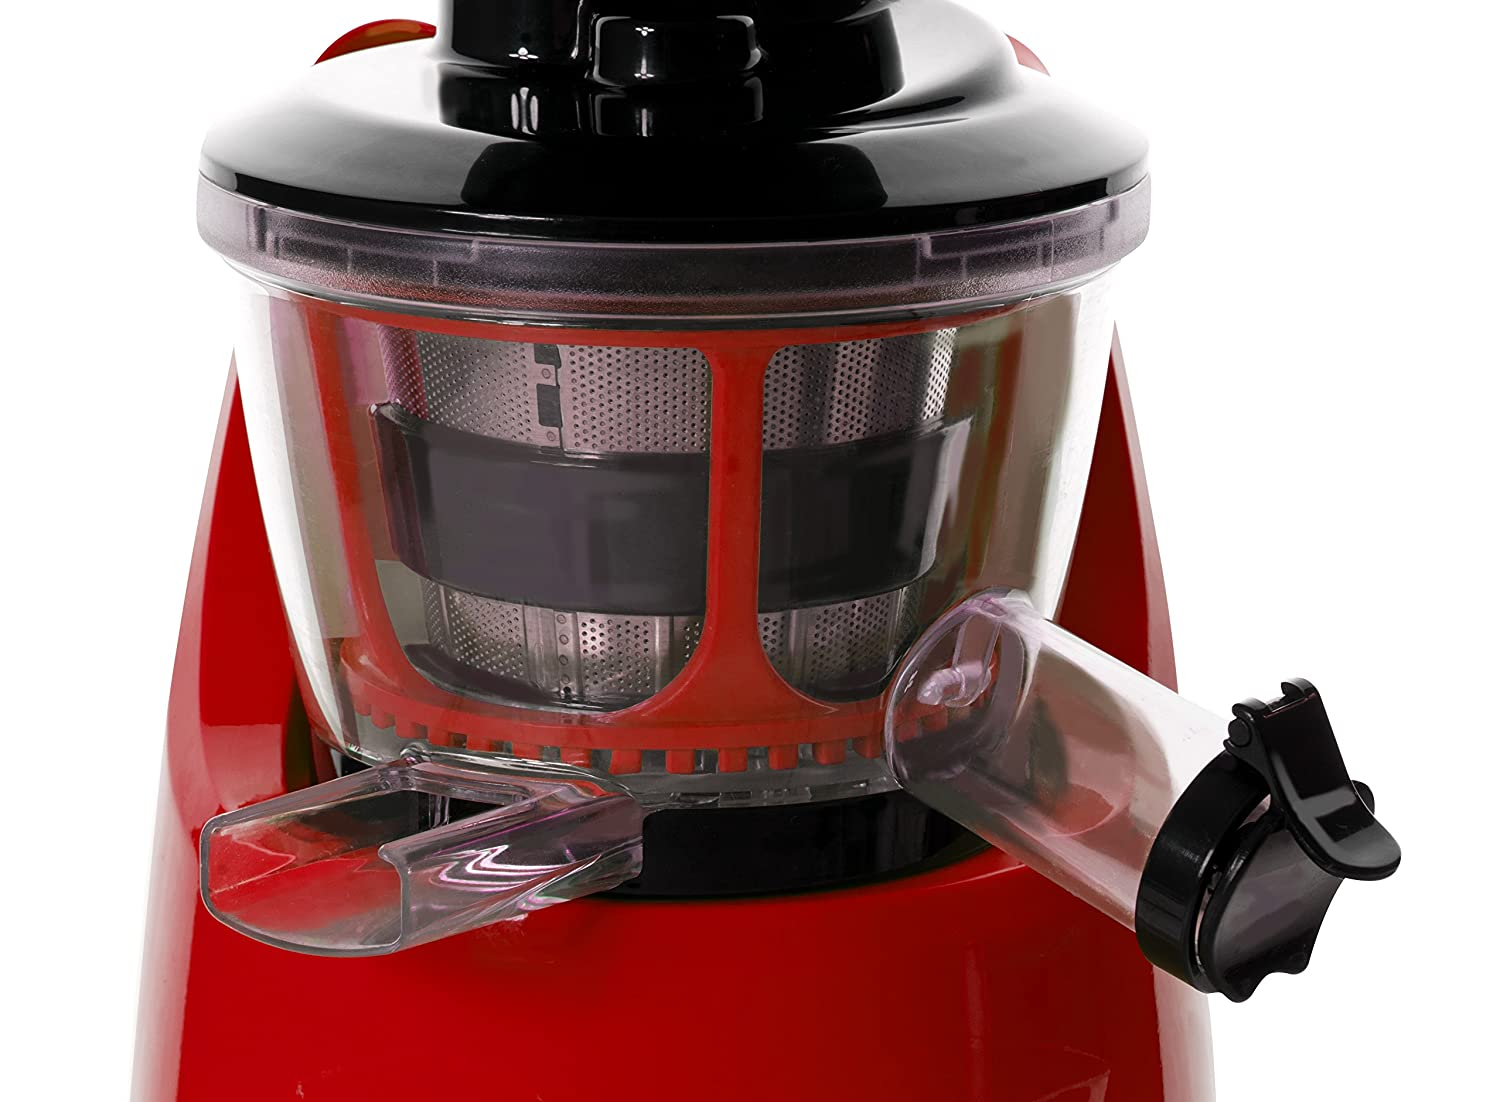 Saves Energy COMIN16JU004914 BLACK VREMI Slow Juicer Precise Slow Press Juice Extracting Process- Reduces Waste - Live Clean /& Green with Delicious /& Natural Juices Pressed Fresh From Your Kitchen